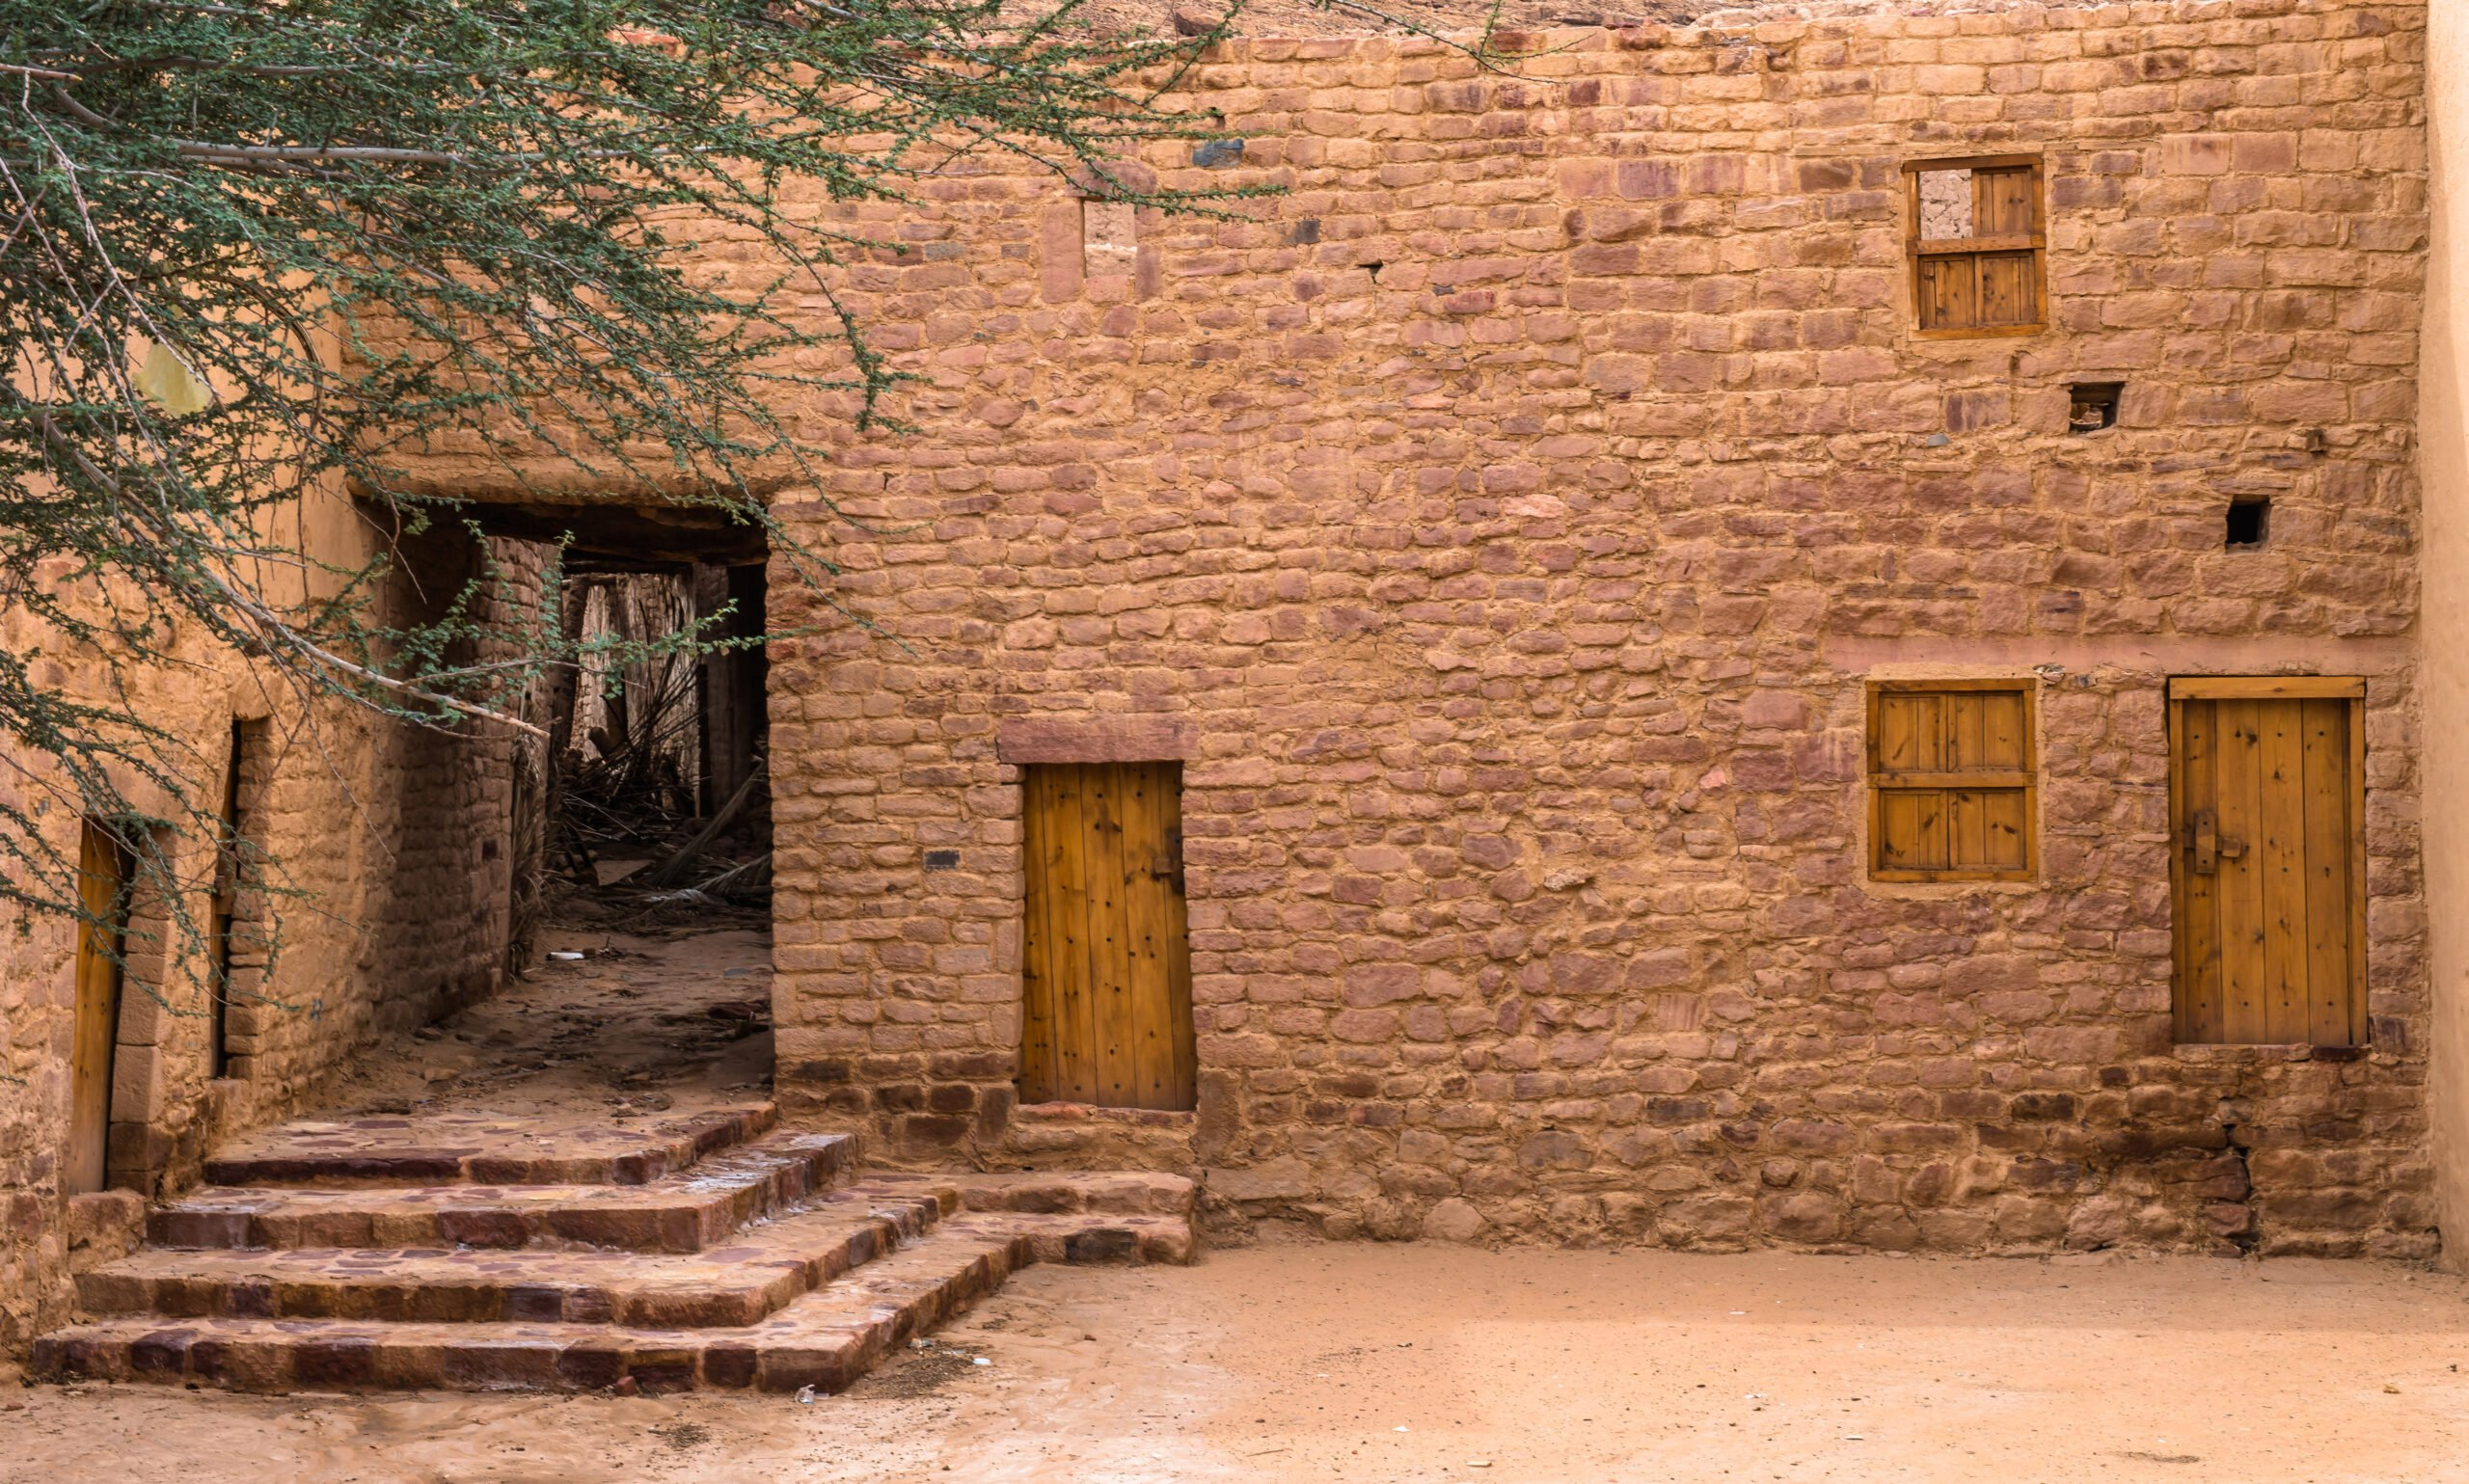 See The Traditional Houses In Al Ula Village On The 3 Day Madain Saleh Tour From Al Ula